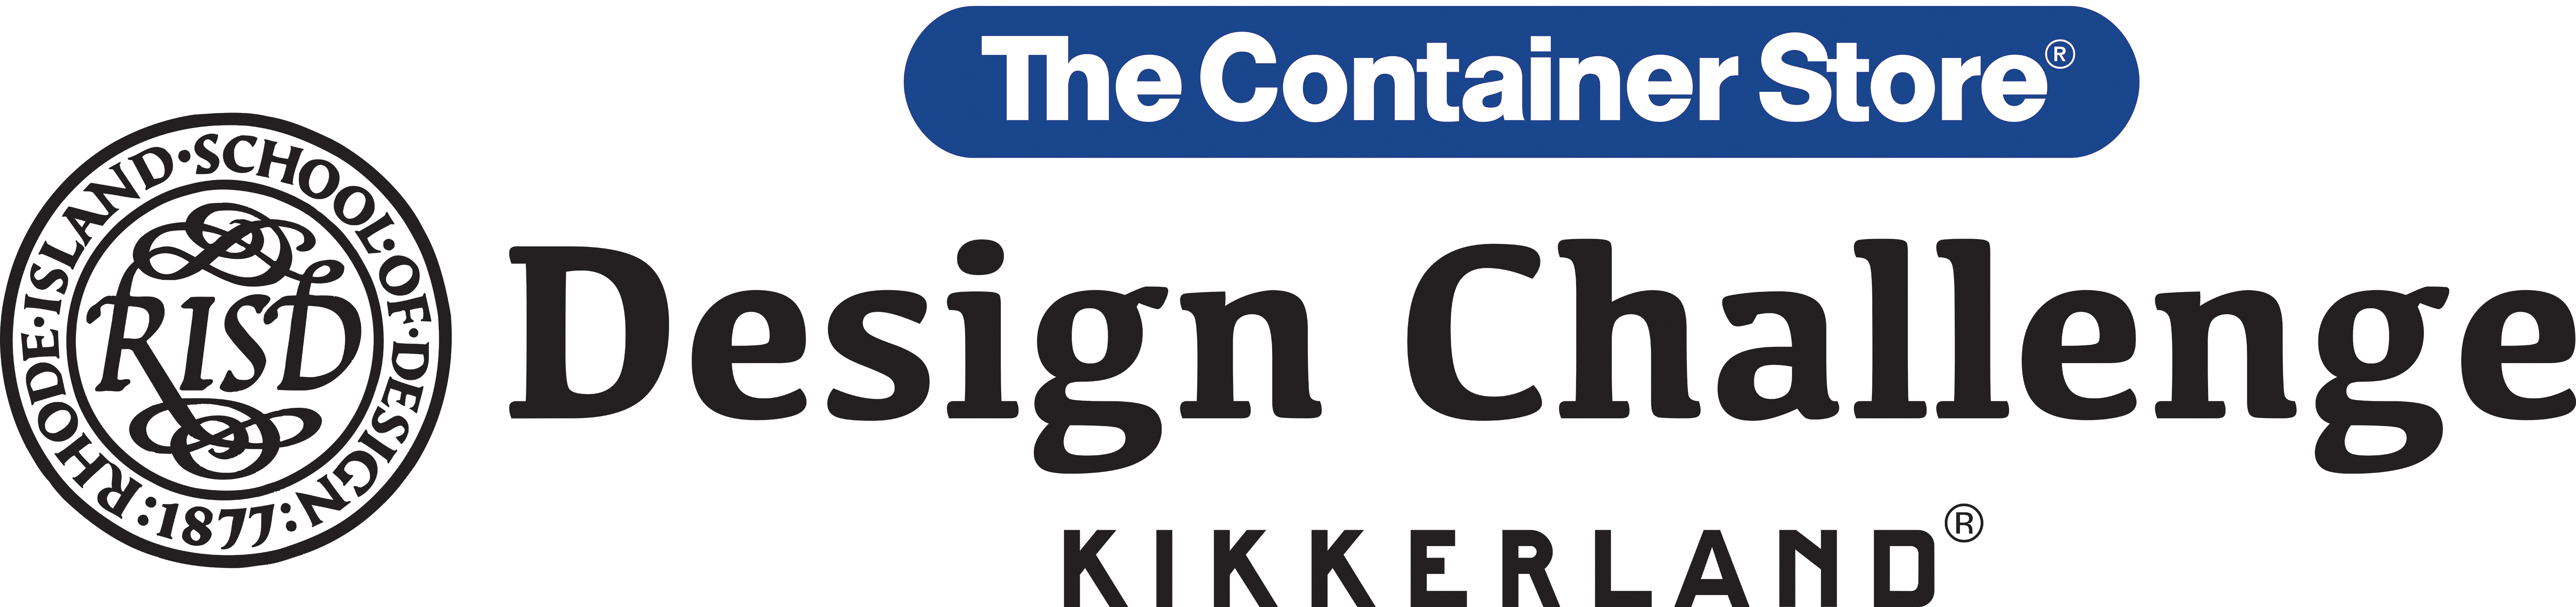 Kikkerland And The Container Store Launch Home Design Challenge Business Wire